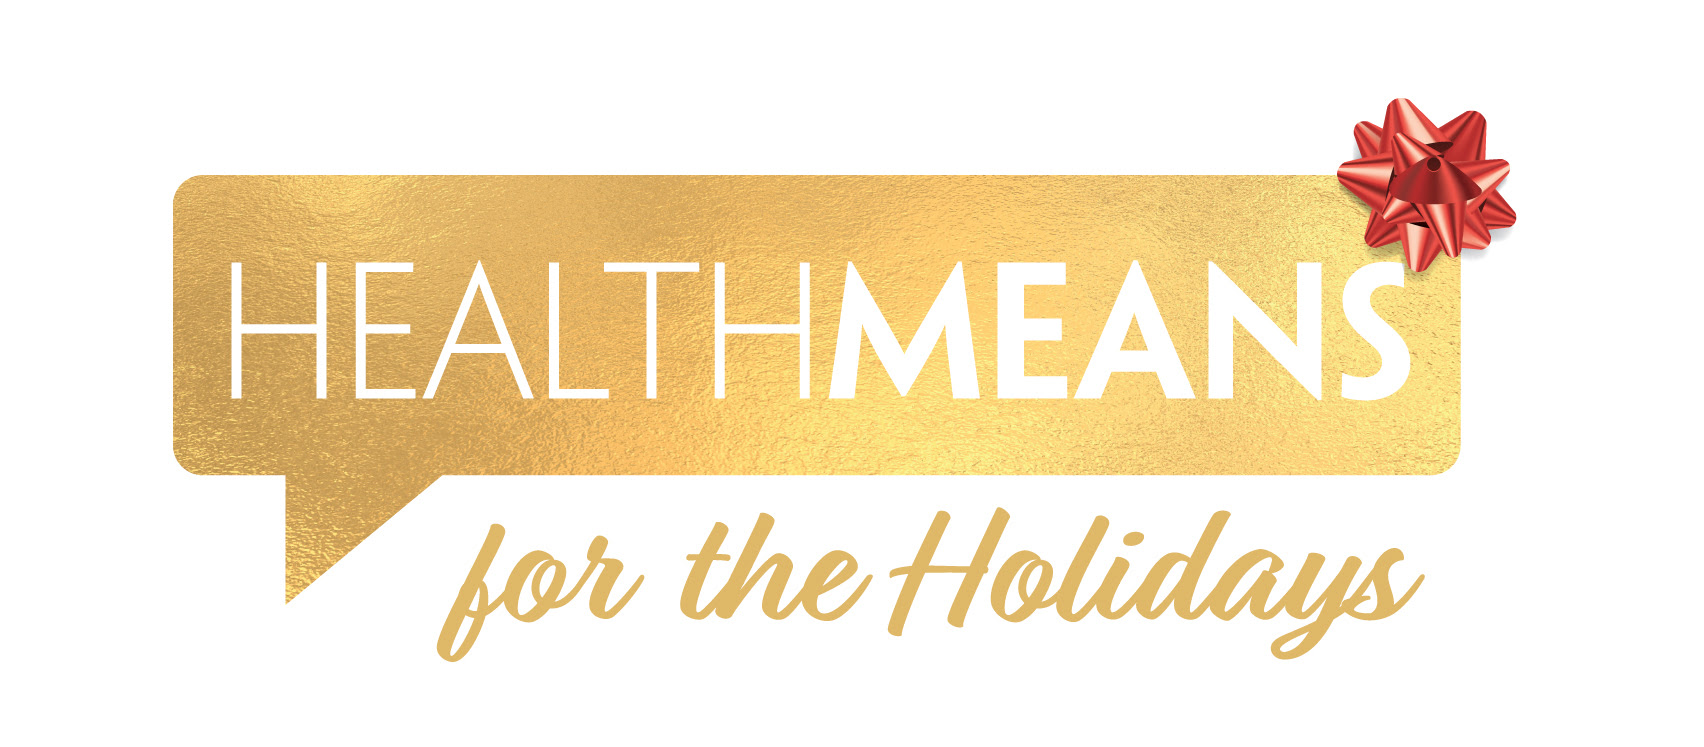 Healthmeans holiday - 20 Expert Health Talks FREE from the HealthMeans team-  limited time only